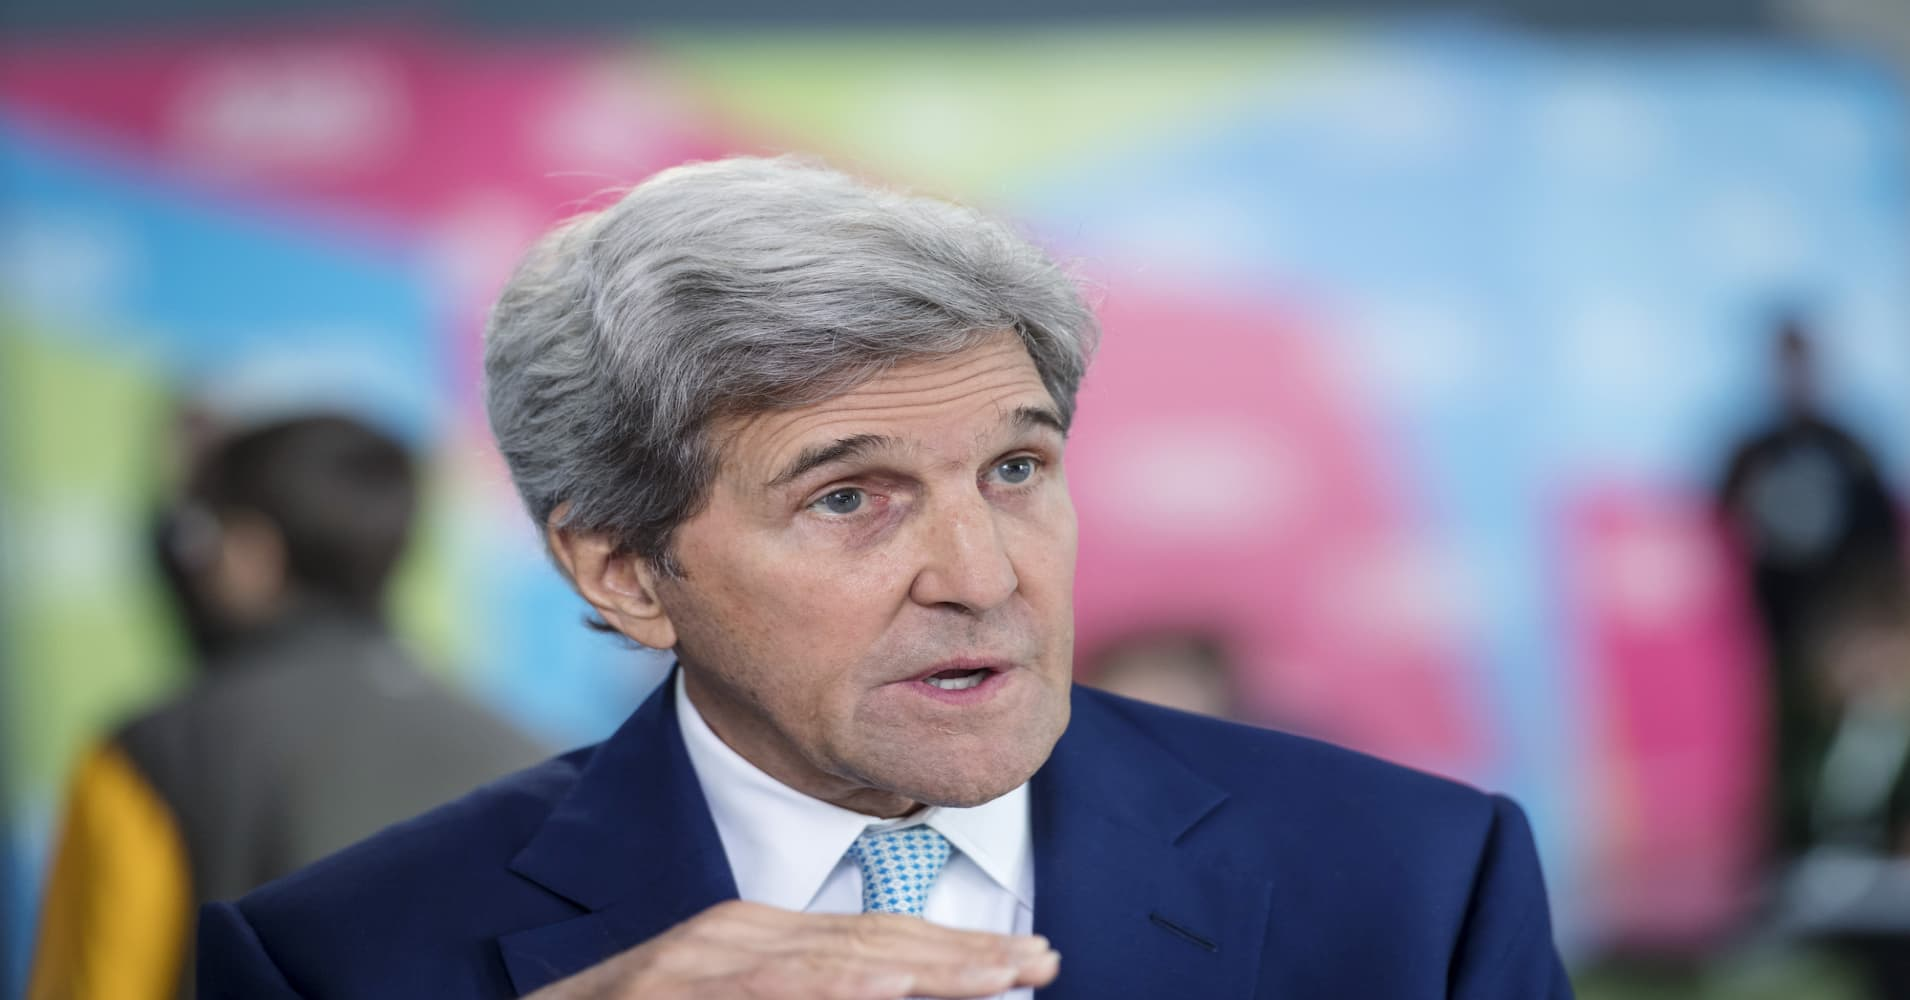 John Kerry told an audience at Davos that President Donald Trump should resign